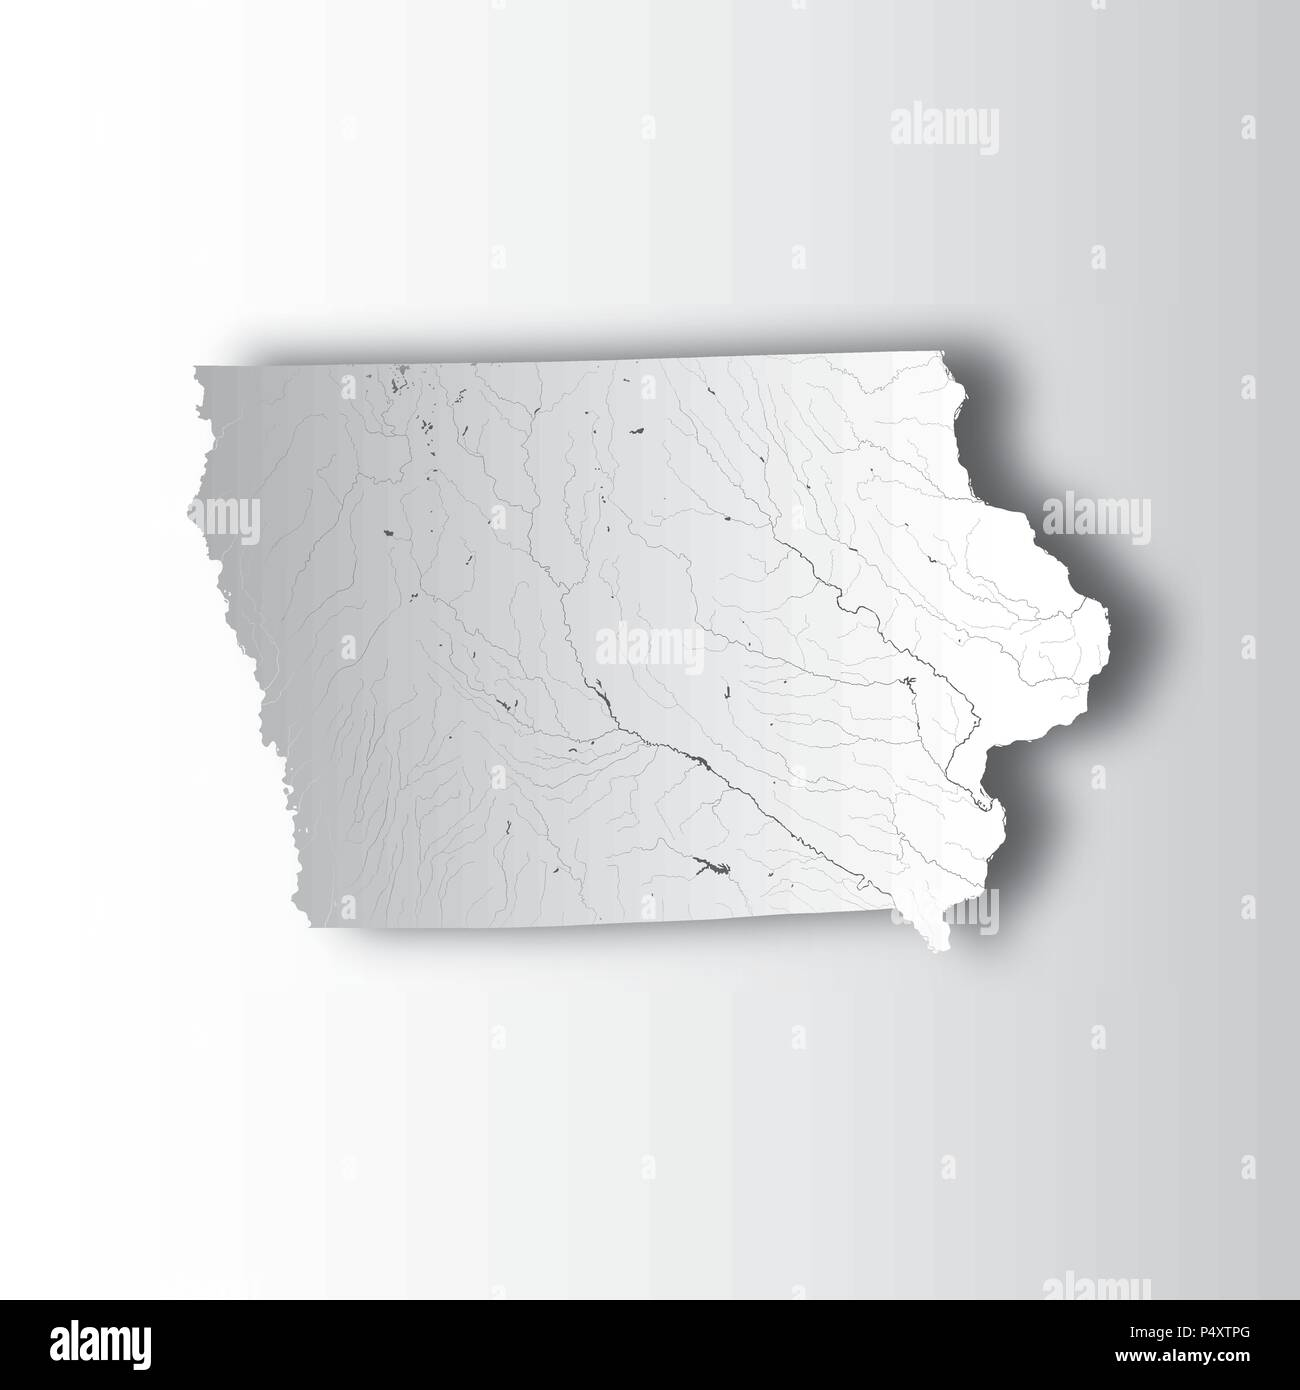 Us States Map Of Iowa With Paper Cut Effect Hand Made Rivers - Iowa-on-a-us-map